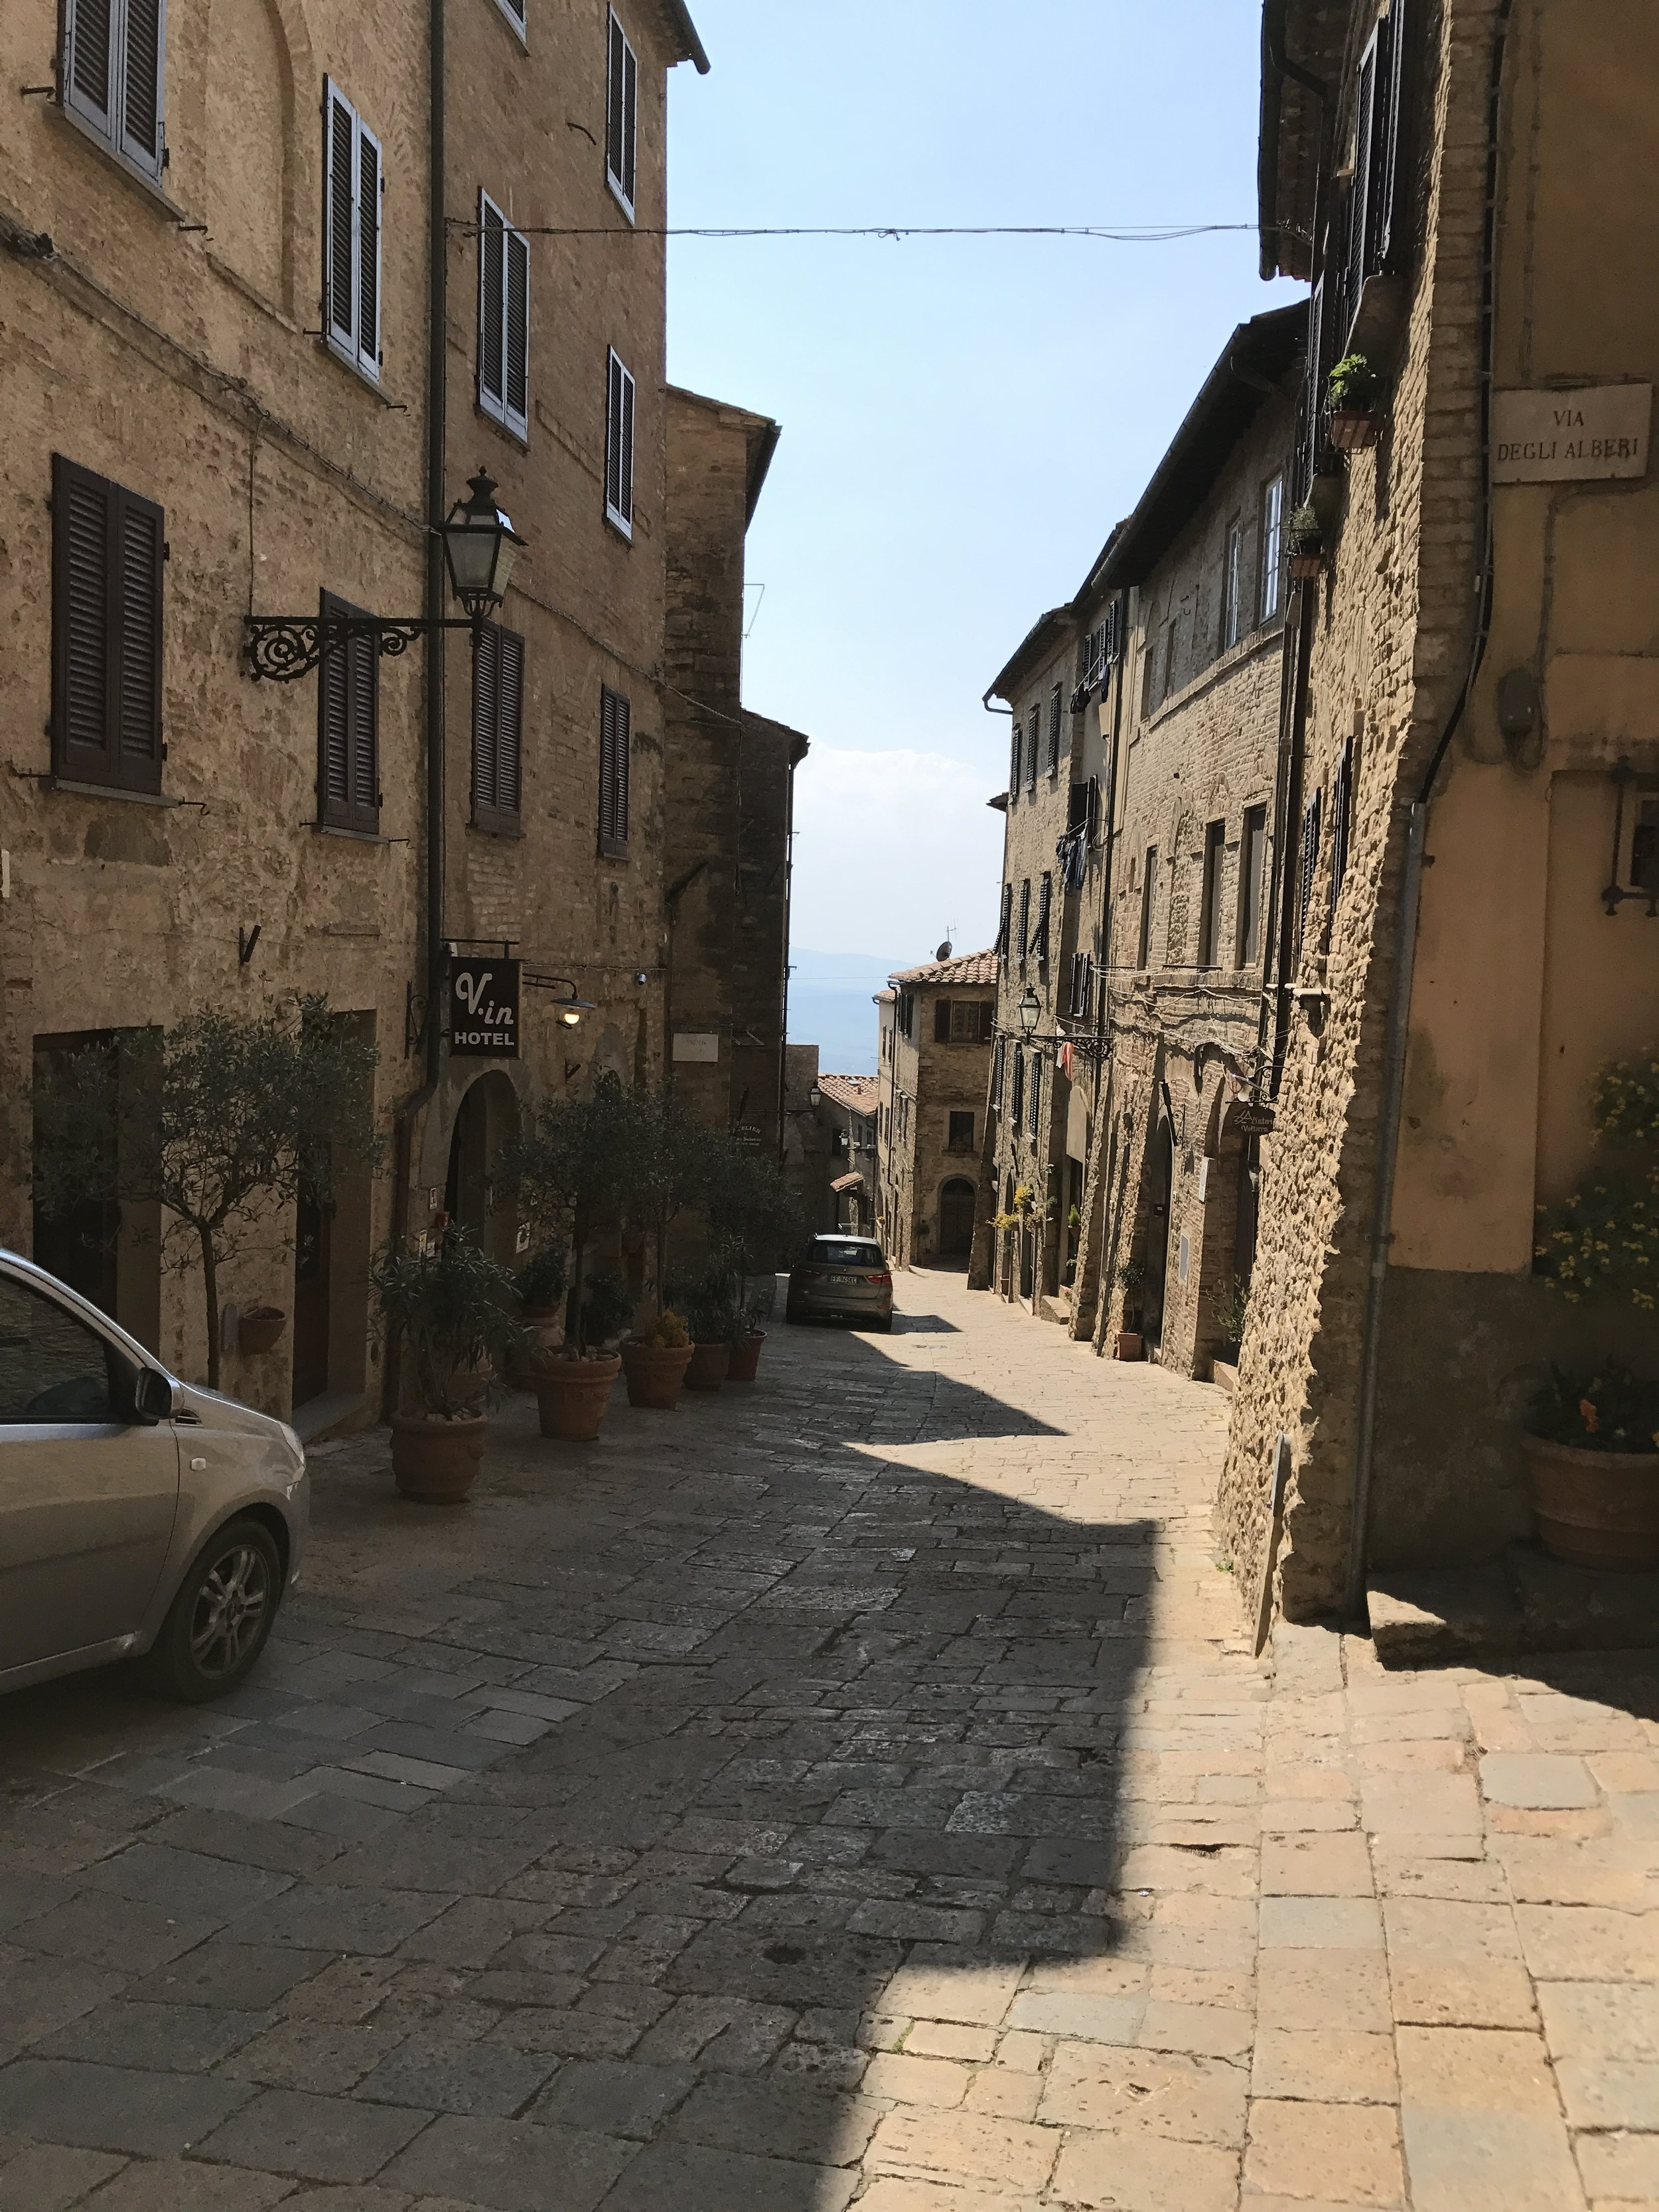 Steep street view, typical of the hilltowns, in Volterra.